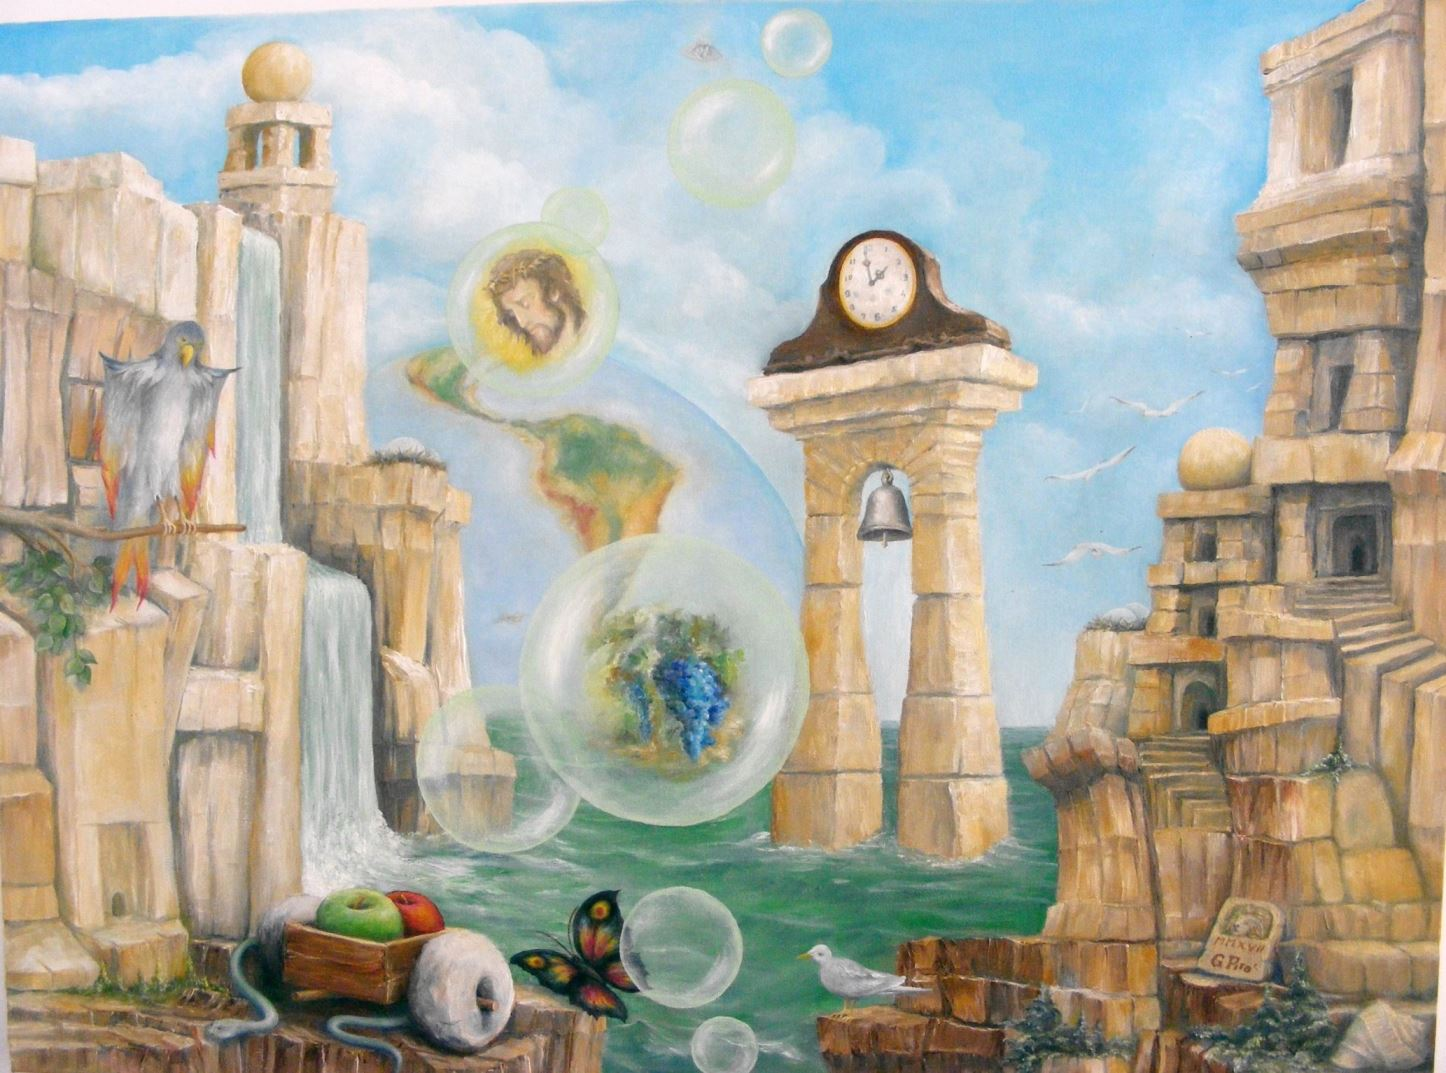 Painting, Gregory Pyra Piro, Surrealism, Oil on Canvas